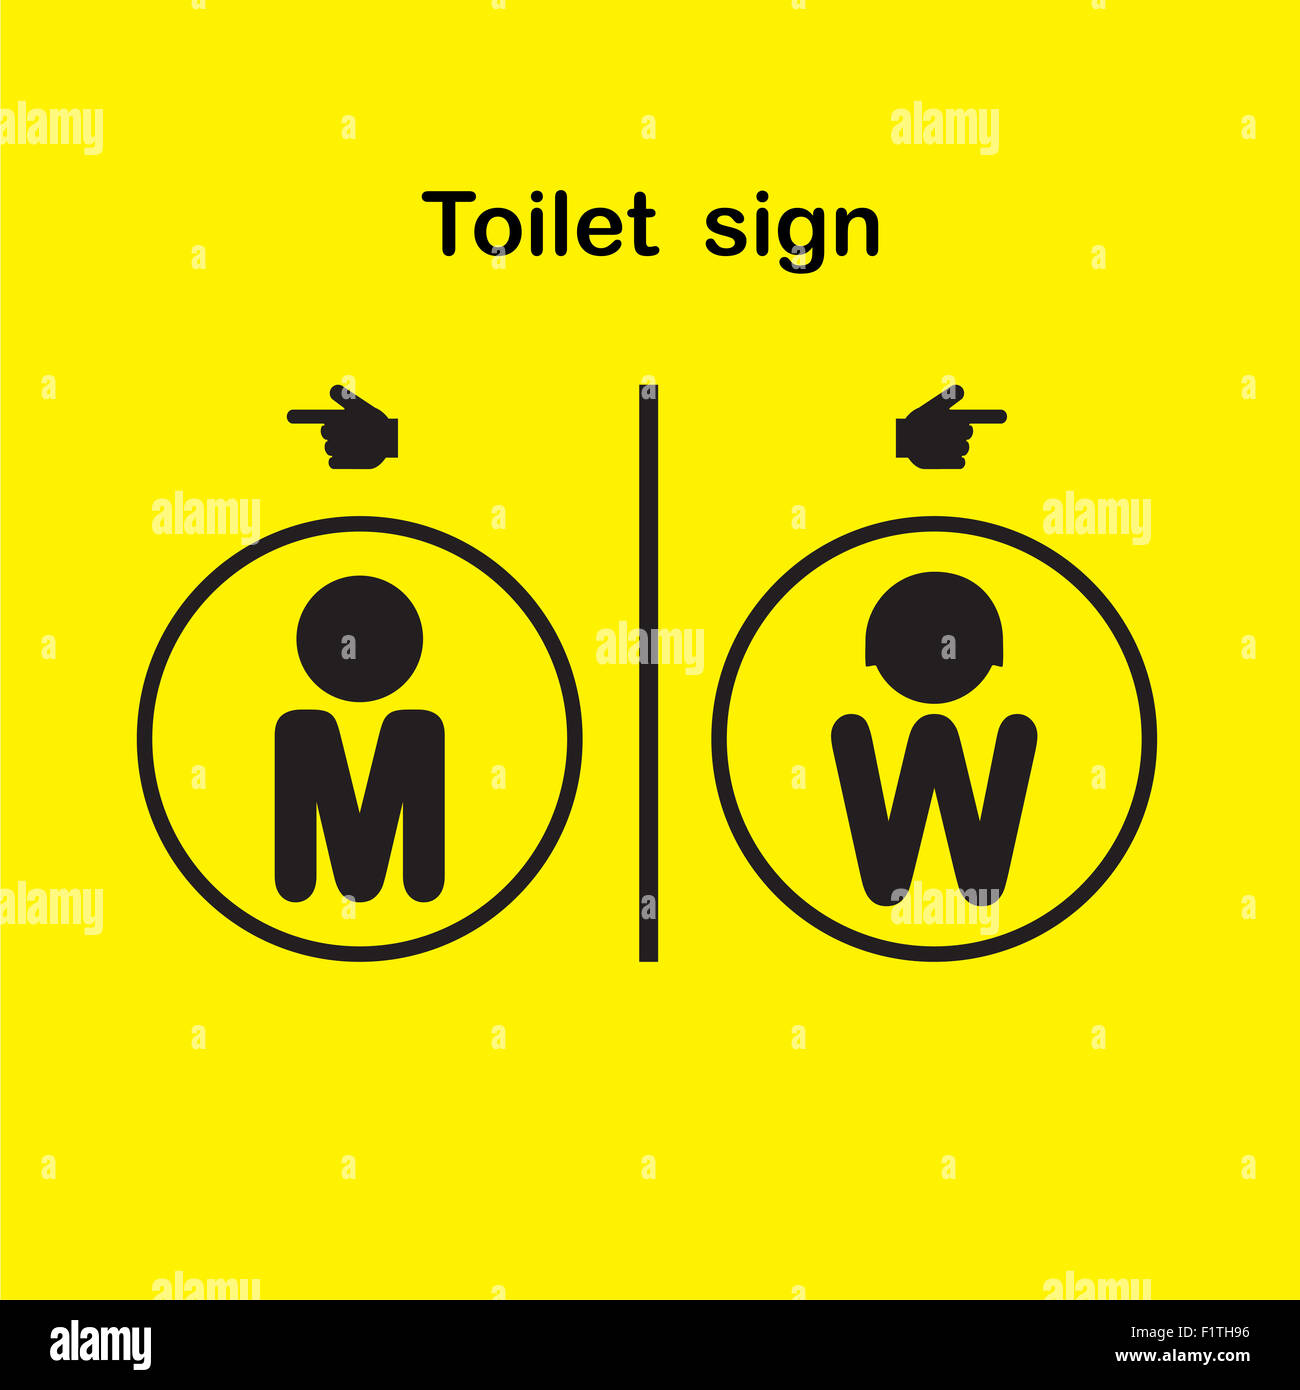 Man And Woman Toilet Sign Restroom Symbol Stock Photo 87206930 Alamy